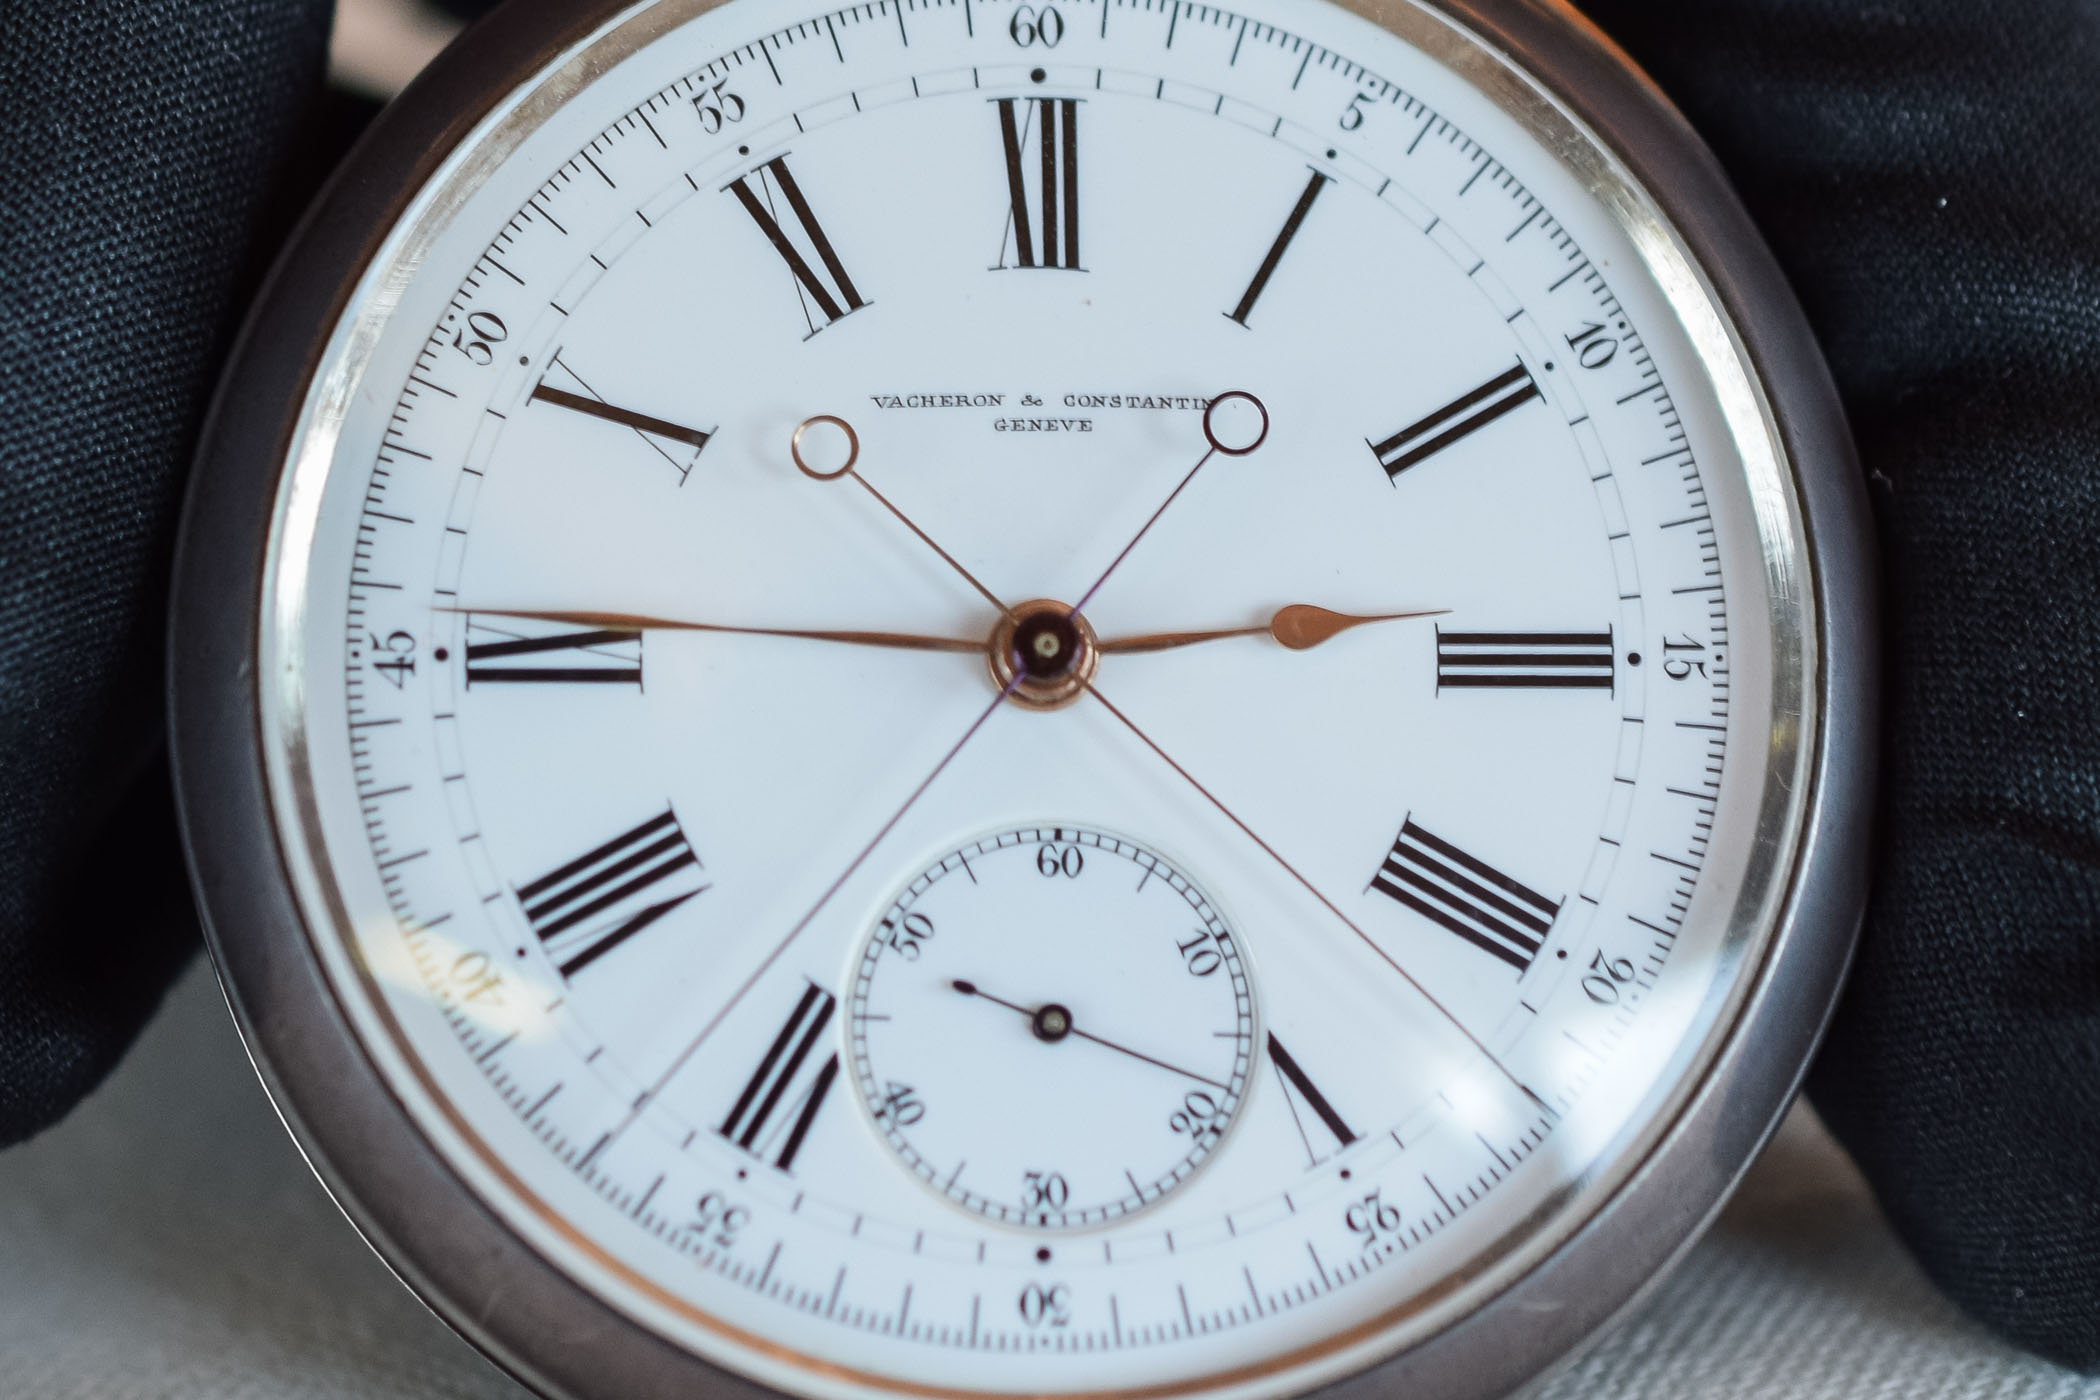 Vacheron Constantin first Split Second chronograph 1889 - 3